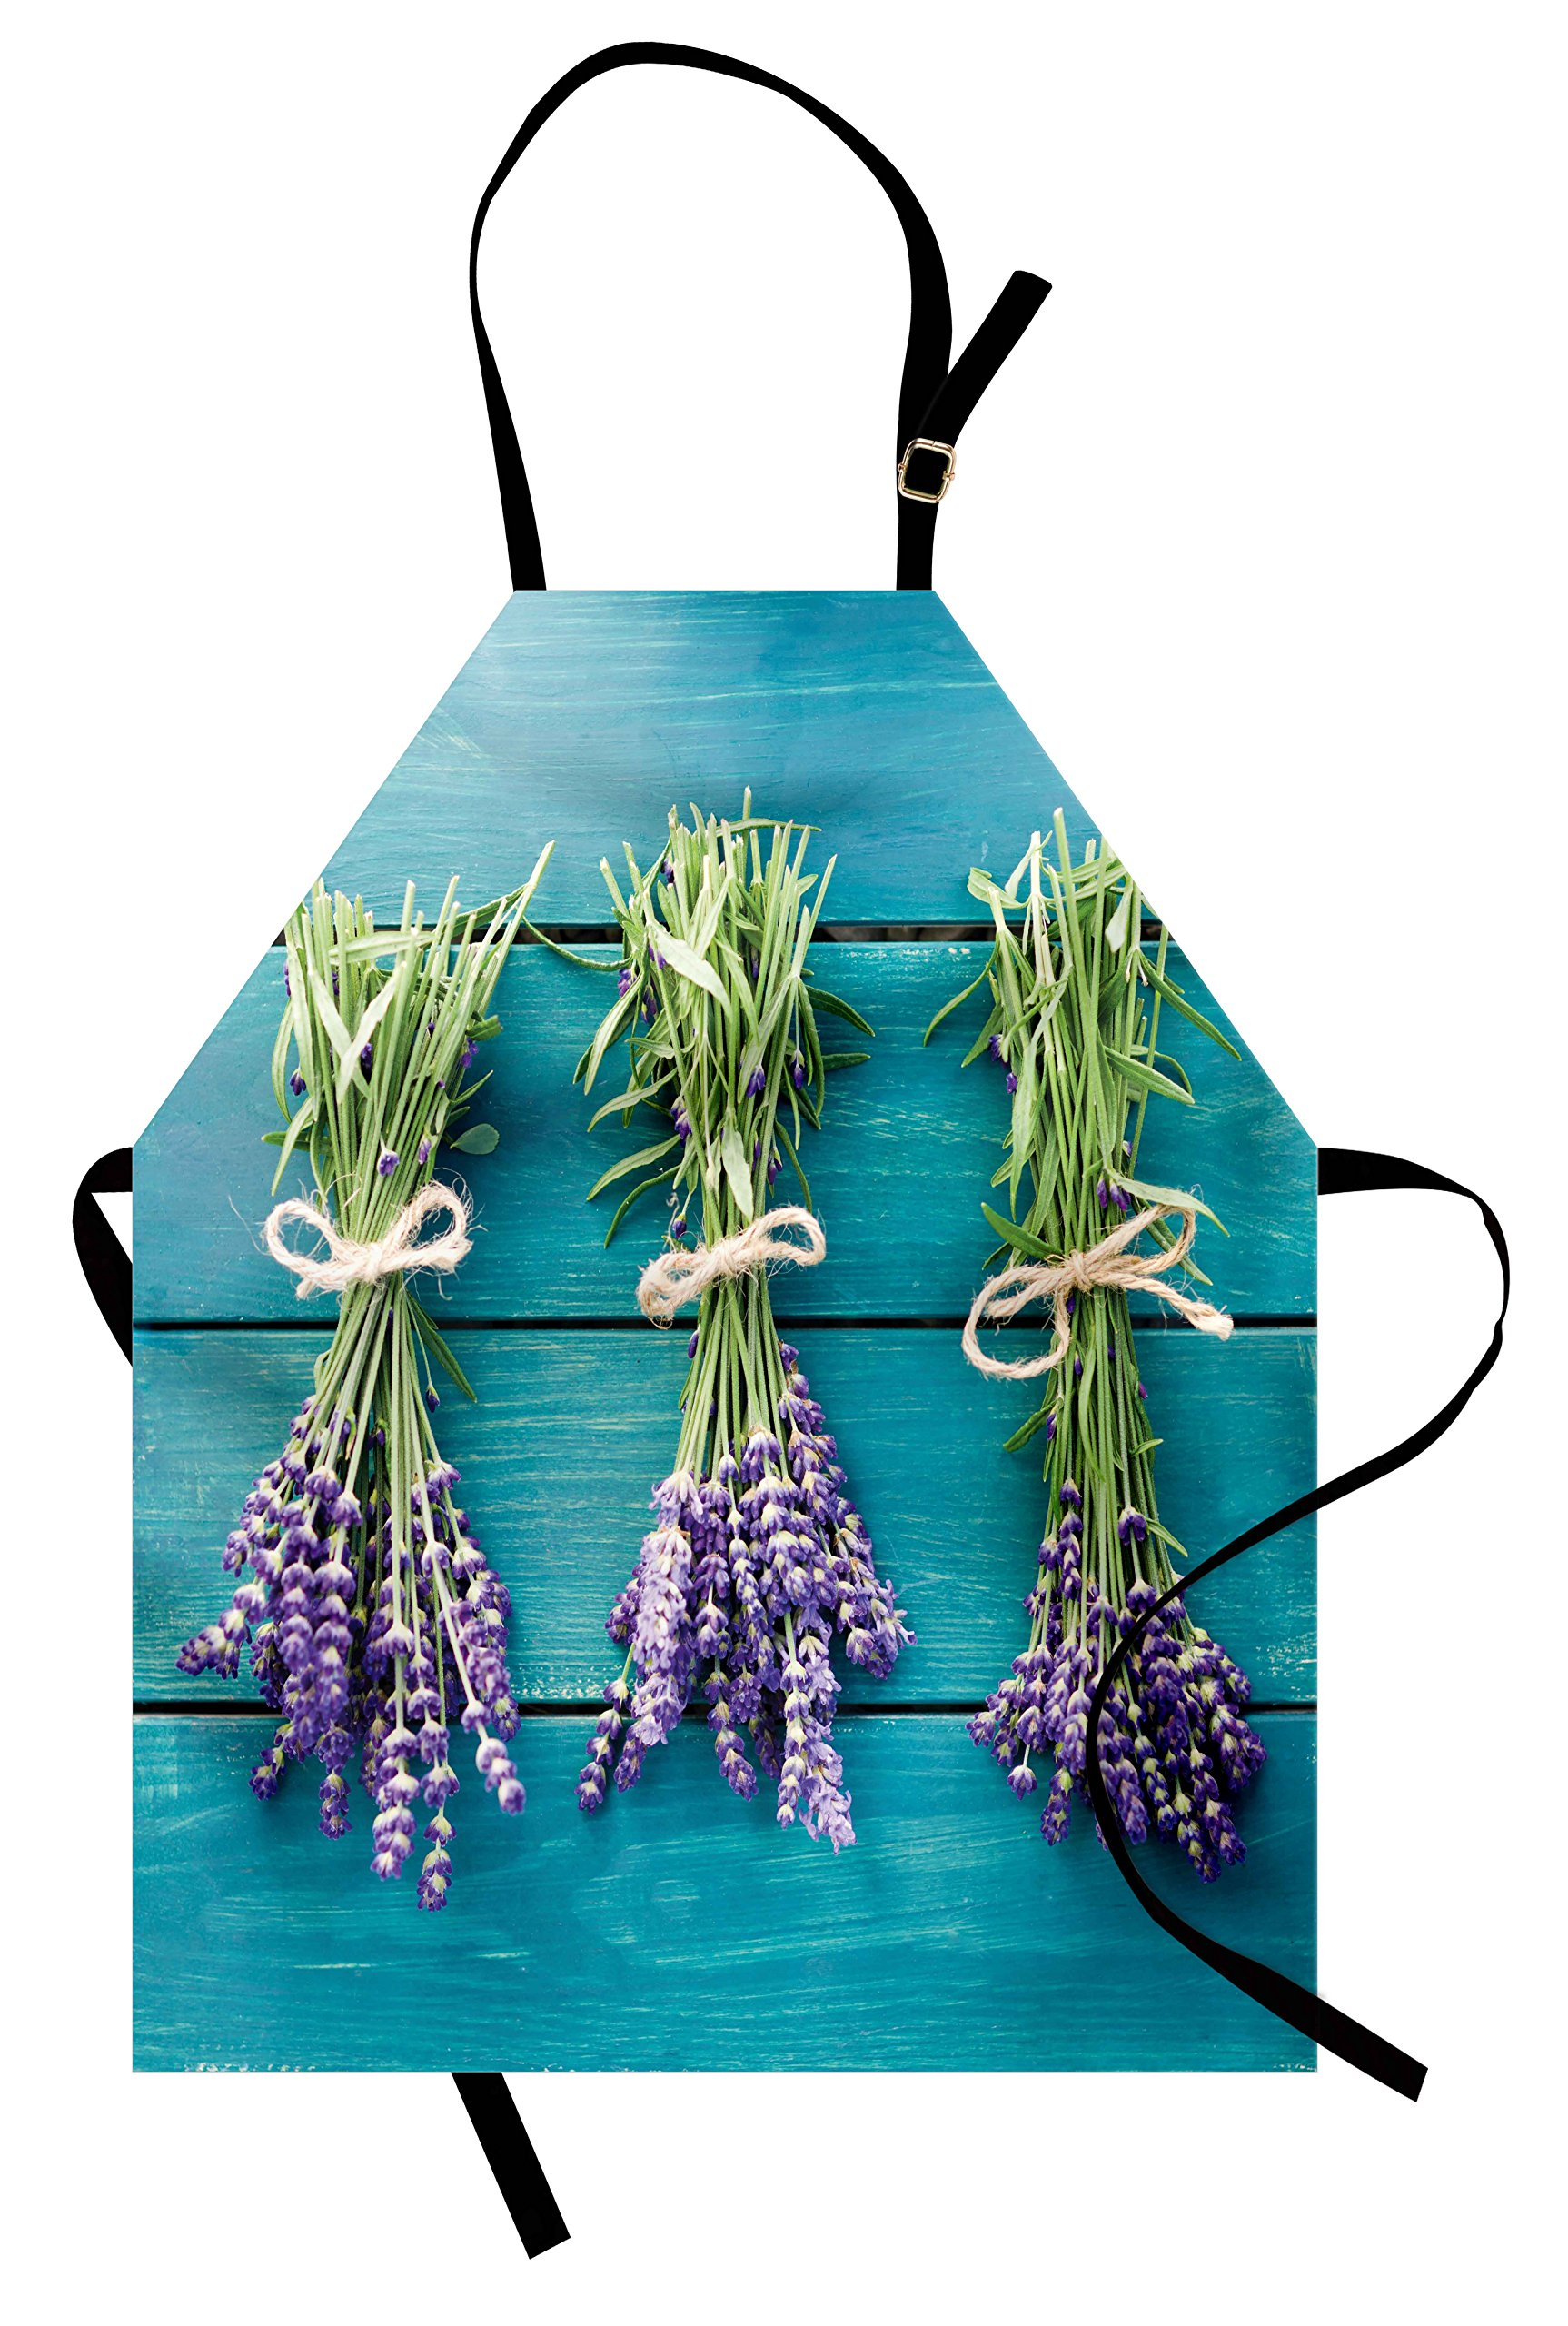 Lunarable Lavender Apron, Fresh Lavender Bouquets on Blue Wooden Planks Rustic Relaxing Spa, Unisex Kitchen Bib Apron with Adjustable Neck for Cooking Baking Gardening, Sky Blue Lavender Green